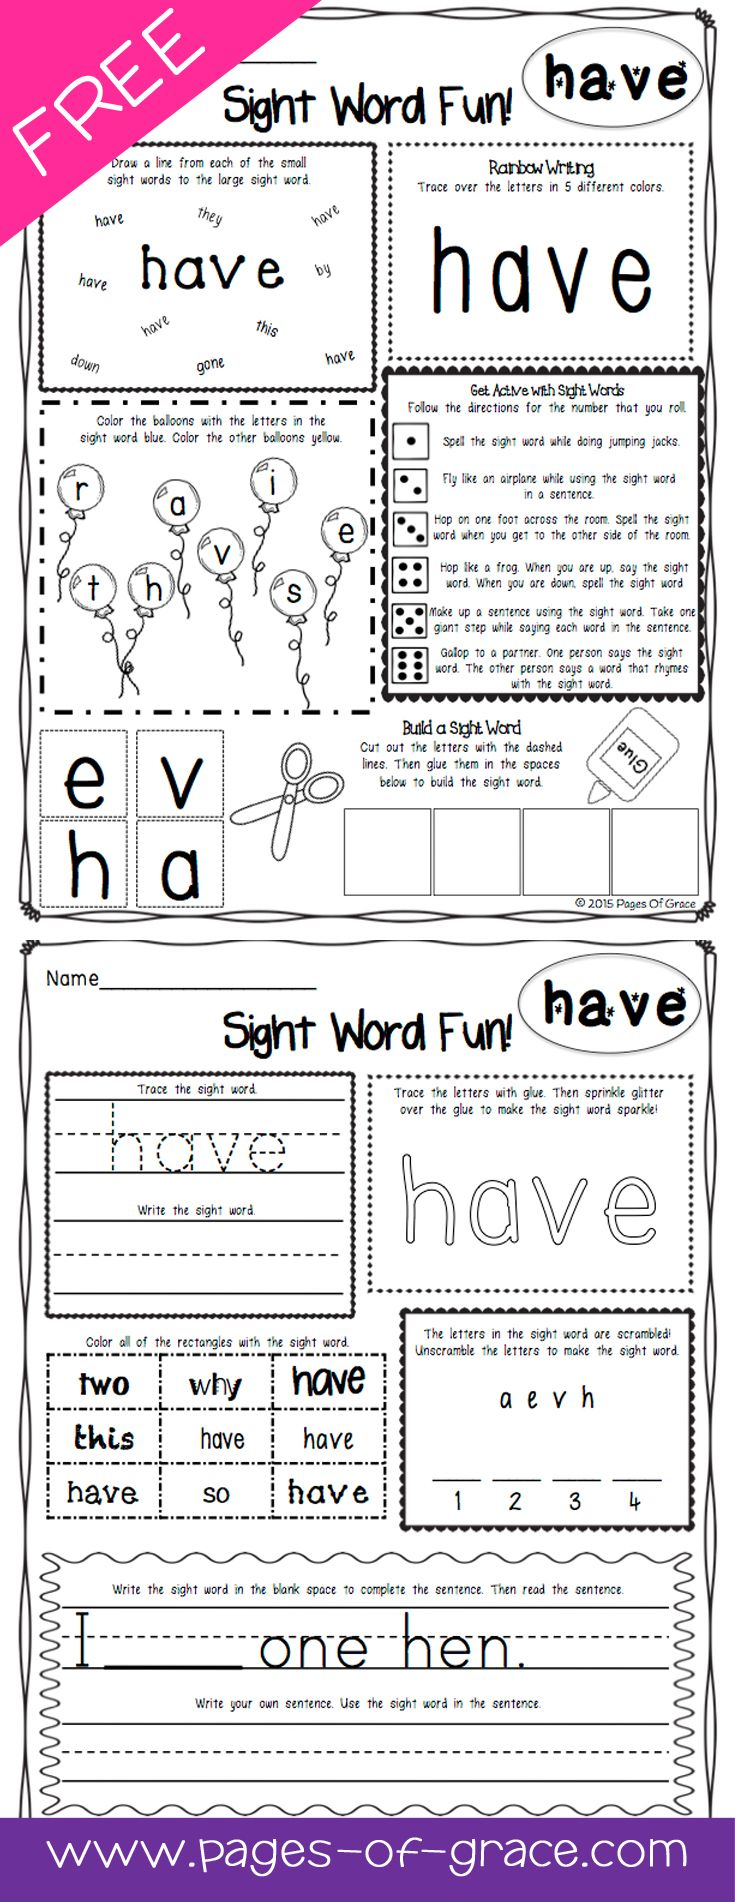 worksheet Fun Language Arts Worksheets 1000 ideas about fun worksheets for kids on pinterest activity are you looking some and activities teaching sight words this free